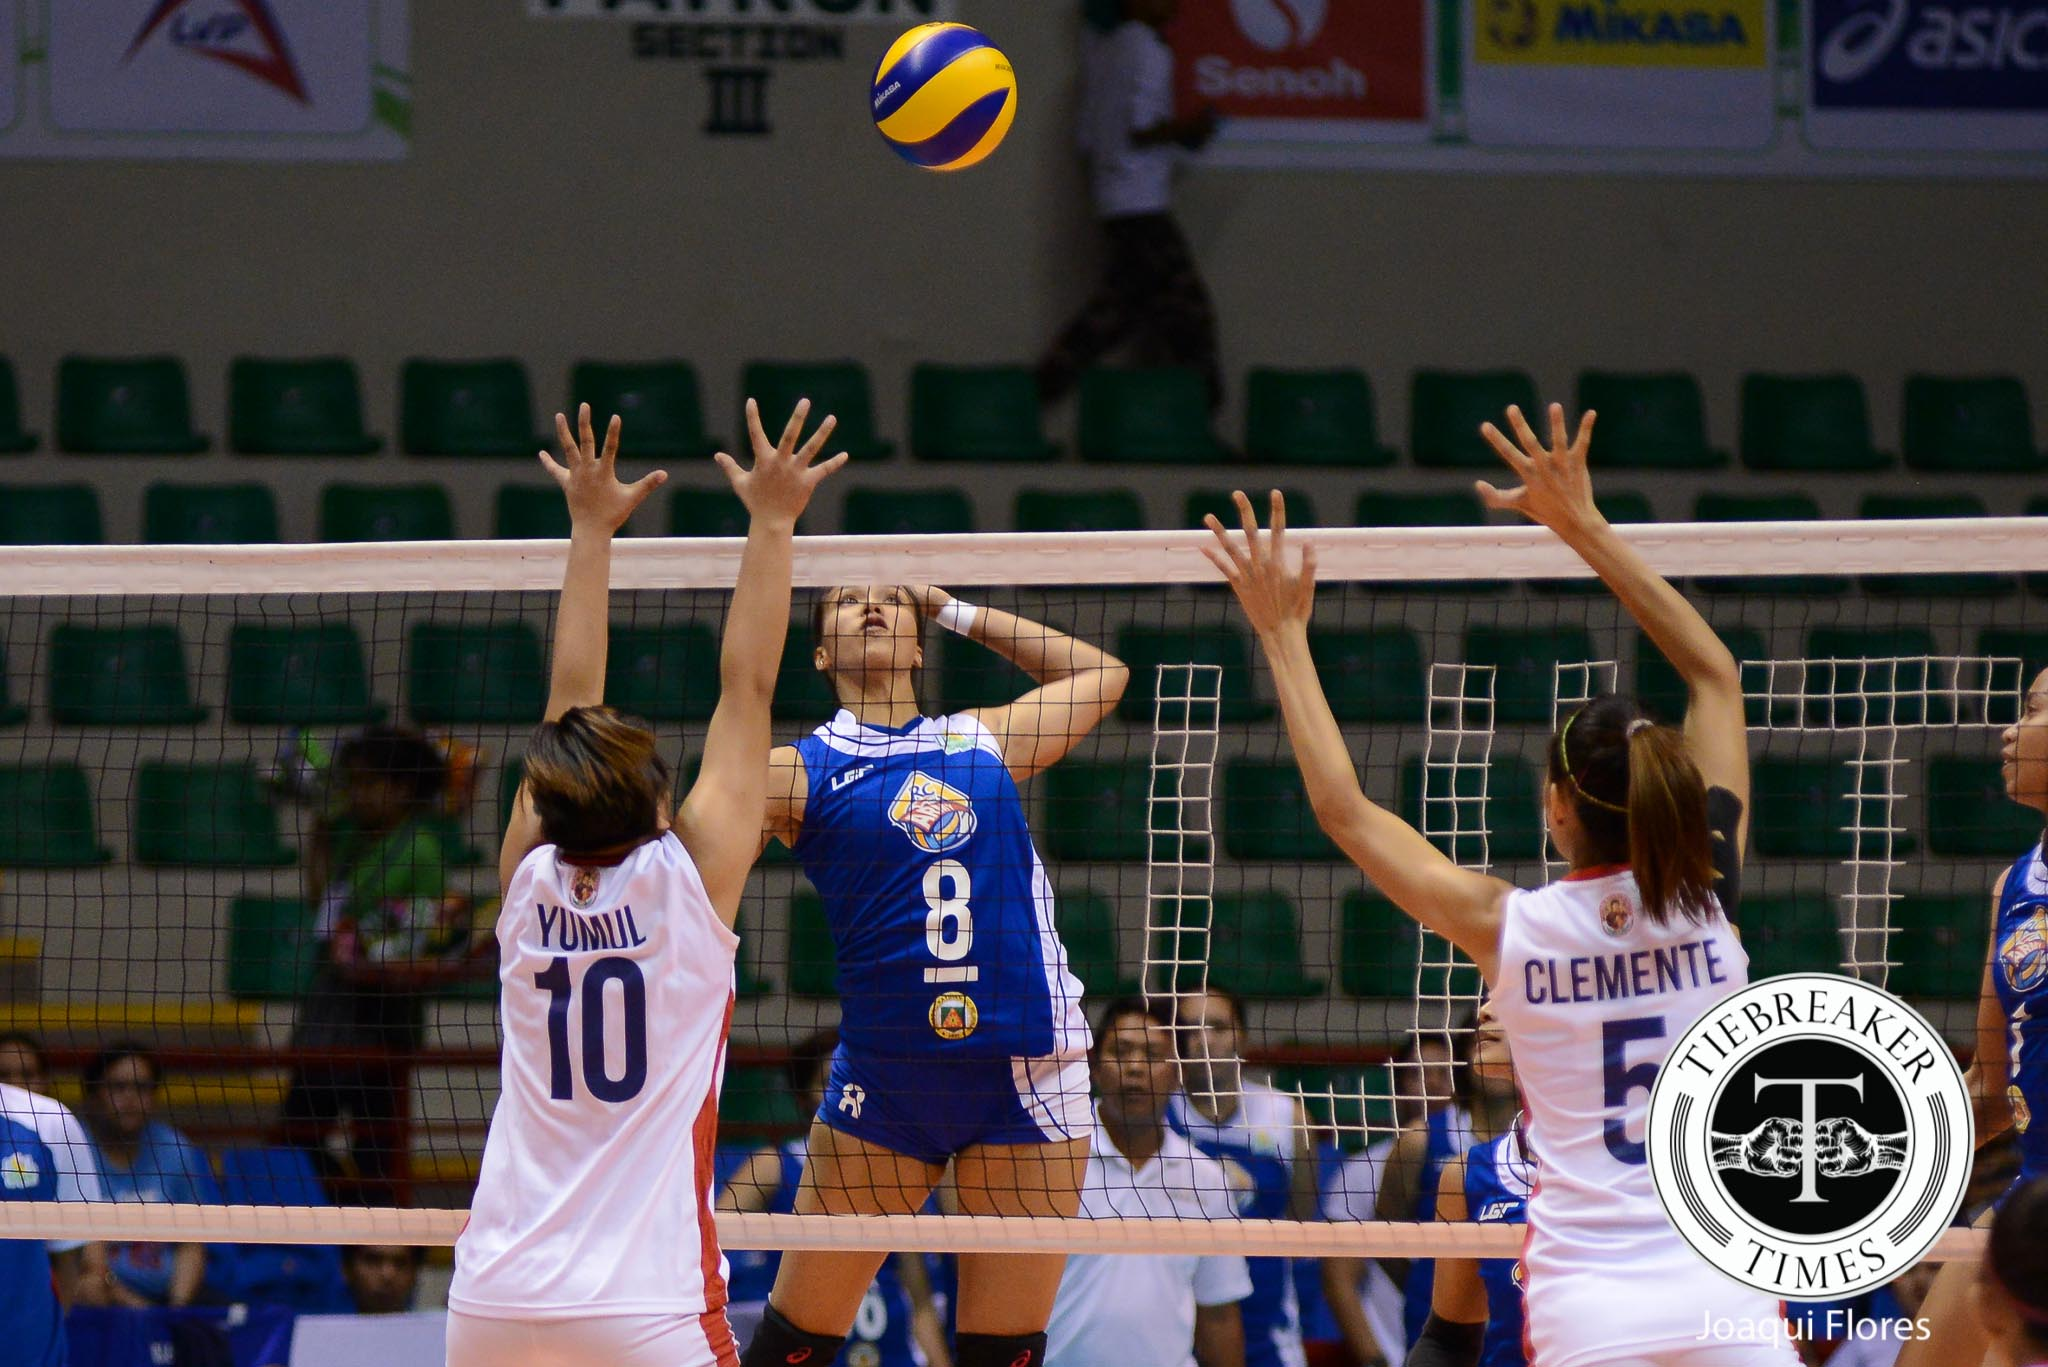 Philippine Sports News - Tiebreaker Times RC Cola - Army completes sweep of first phase, wrecks New San Jose News PSL Volleyball  Royse Tubino RC Cola Army Lady Troopers Rachel Anne Daquis New San Jose Builders Victorias Lourdes Clemente Jovelyn Gonzaga Jamela Suyat 2016 PSL Invitational Cup